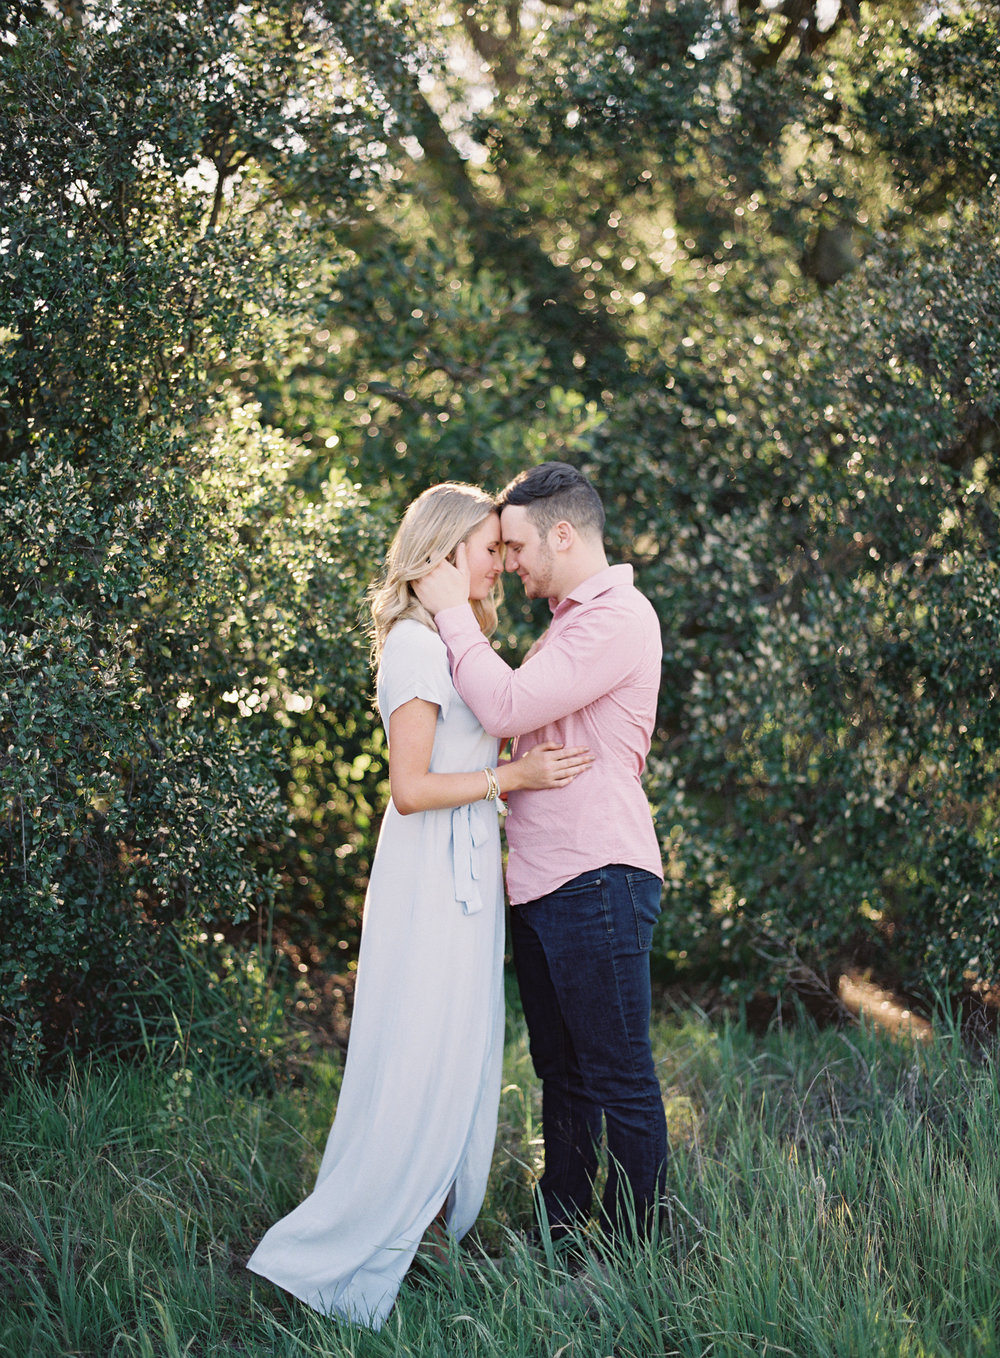 Taylor & Casey's Malibu Engagement-Carrie King Photographer-017.jpg